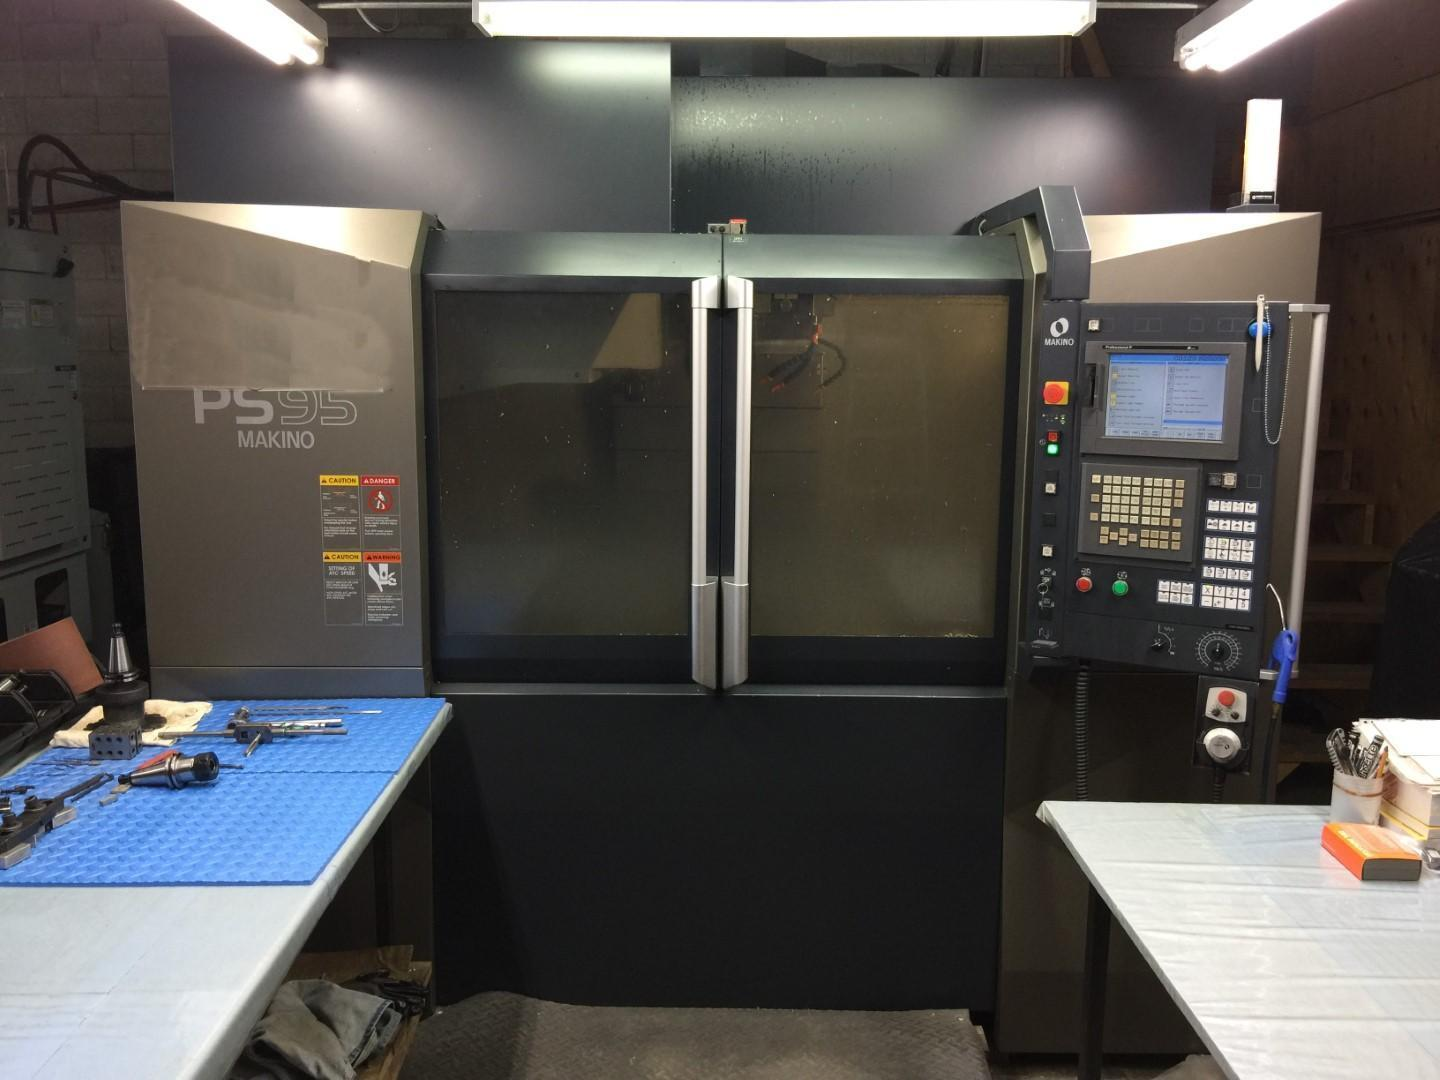 Makino PS95 CNC Vertical Machining Center